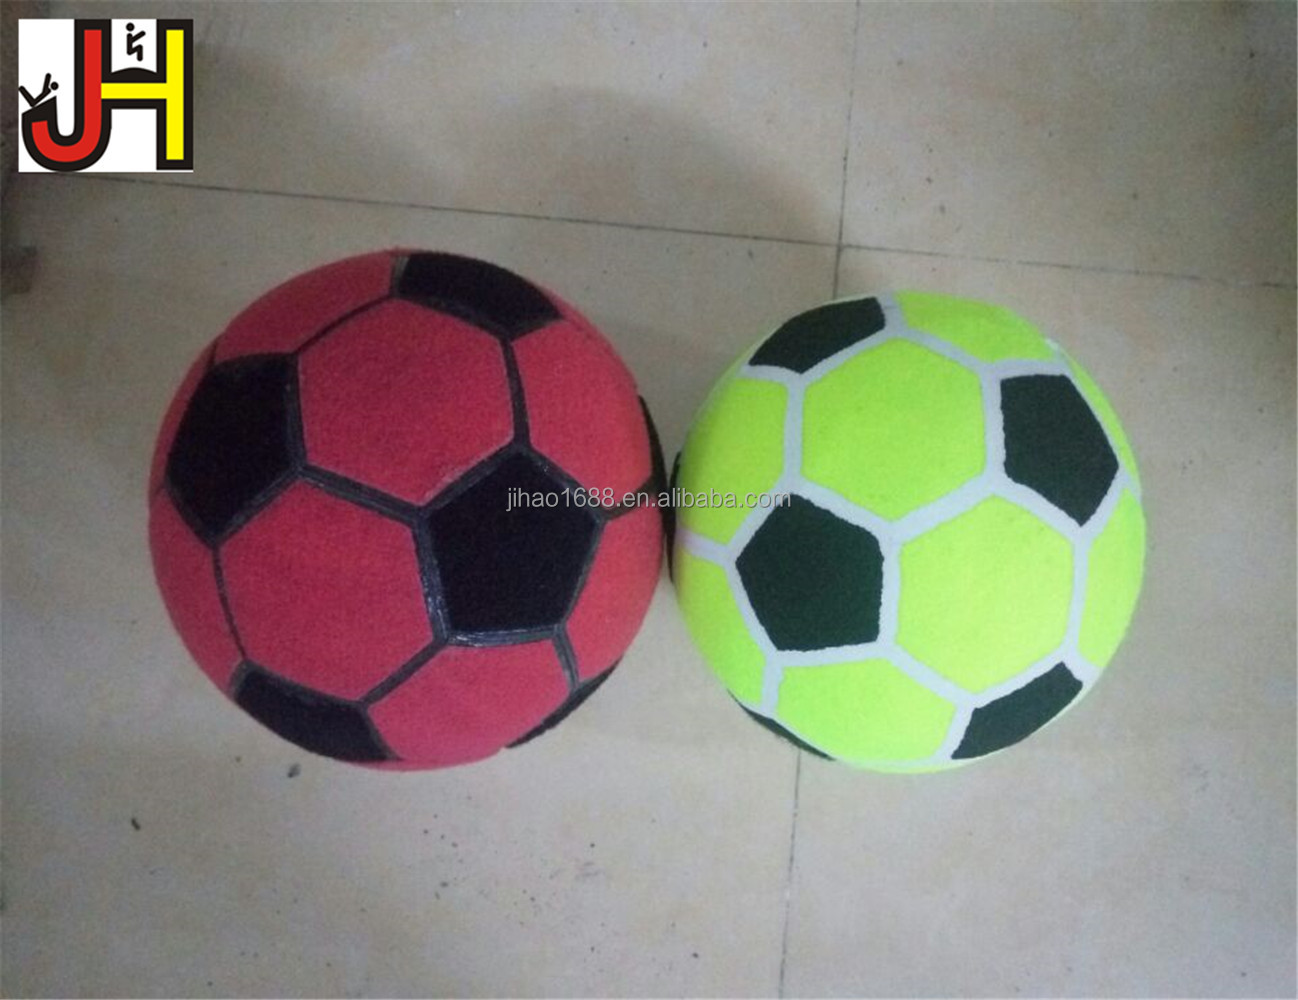 Inflatable footdart ball soccer dart balls dart <strong>football</strong> for dart board